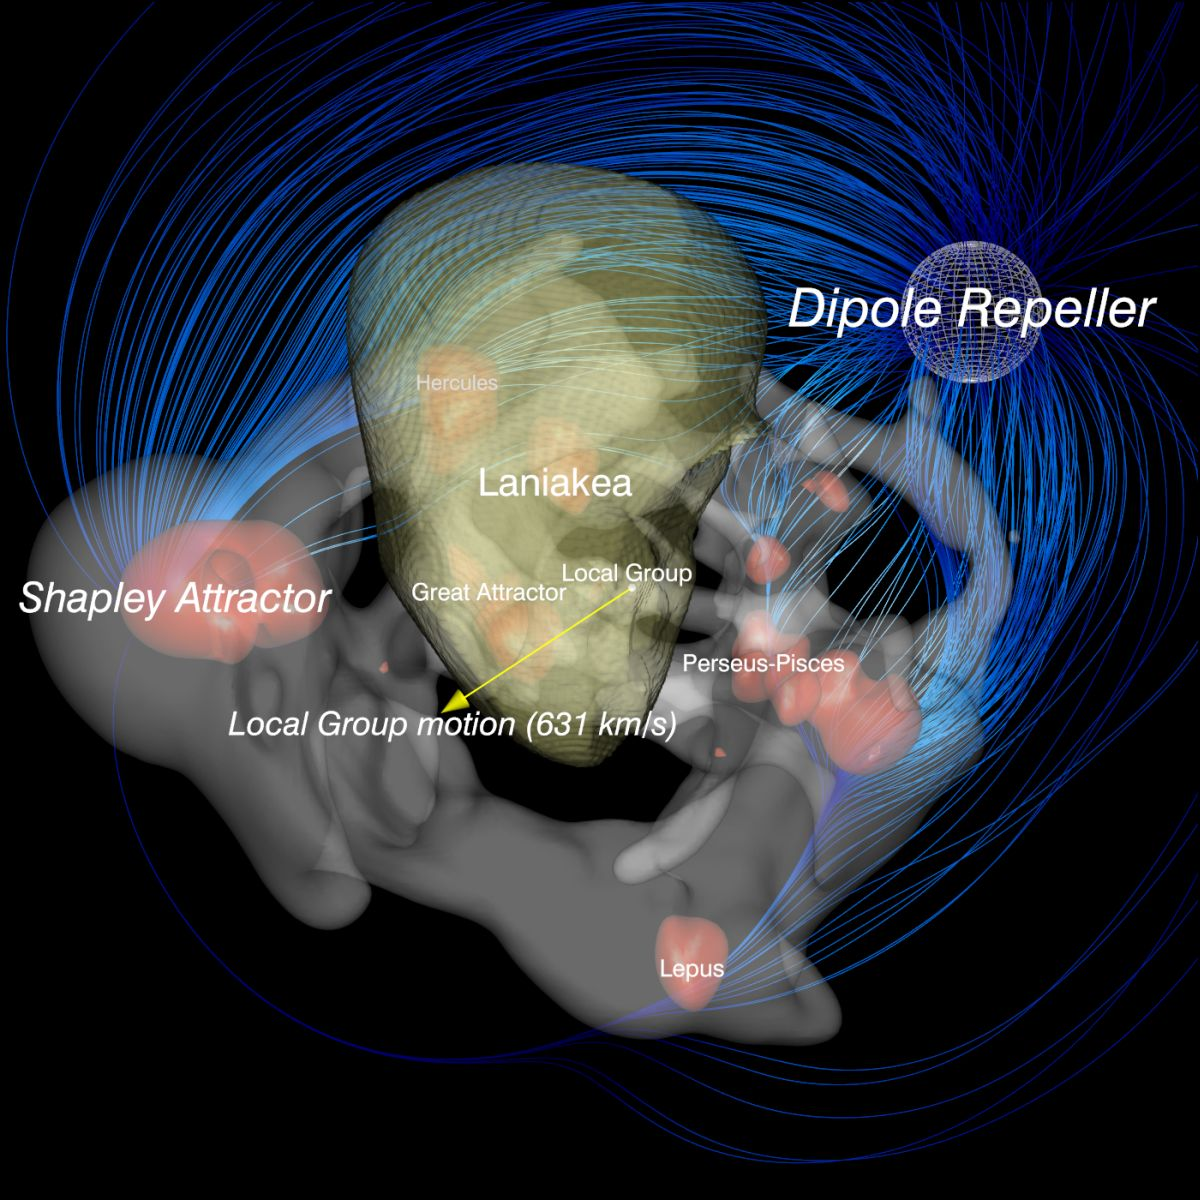 An illustration of the Dipole Repeller in the universe. Courtesy of the Hebrew University of Jerusalem